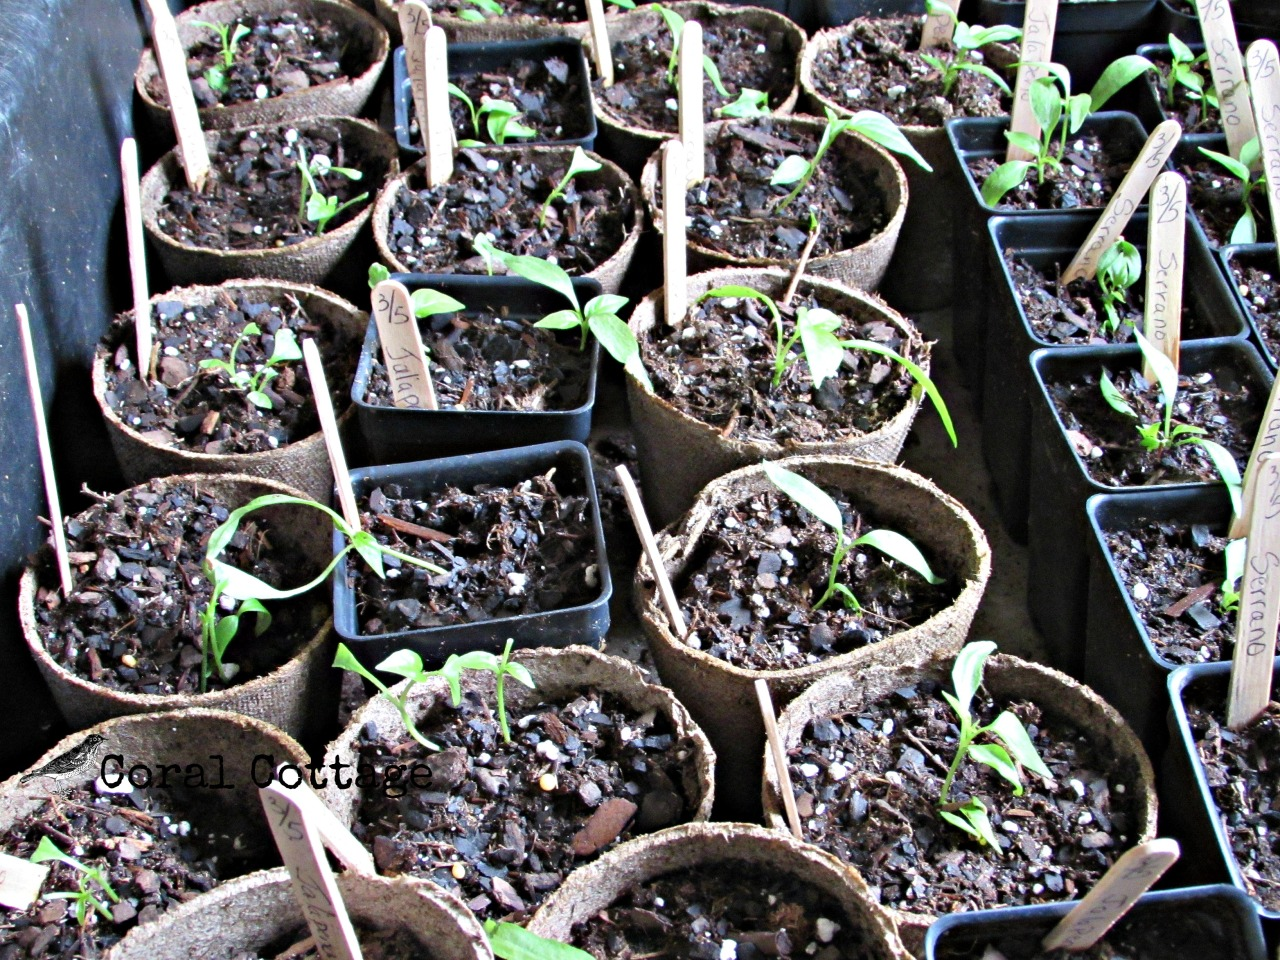 jalapeno seedlings